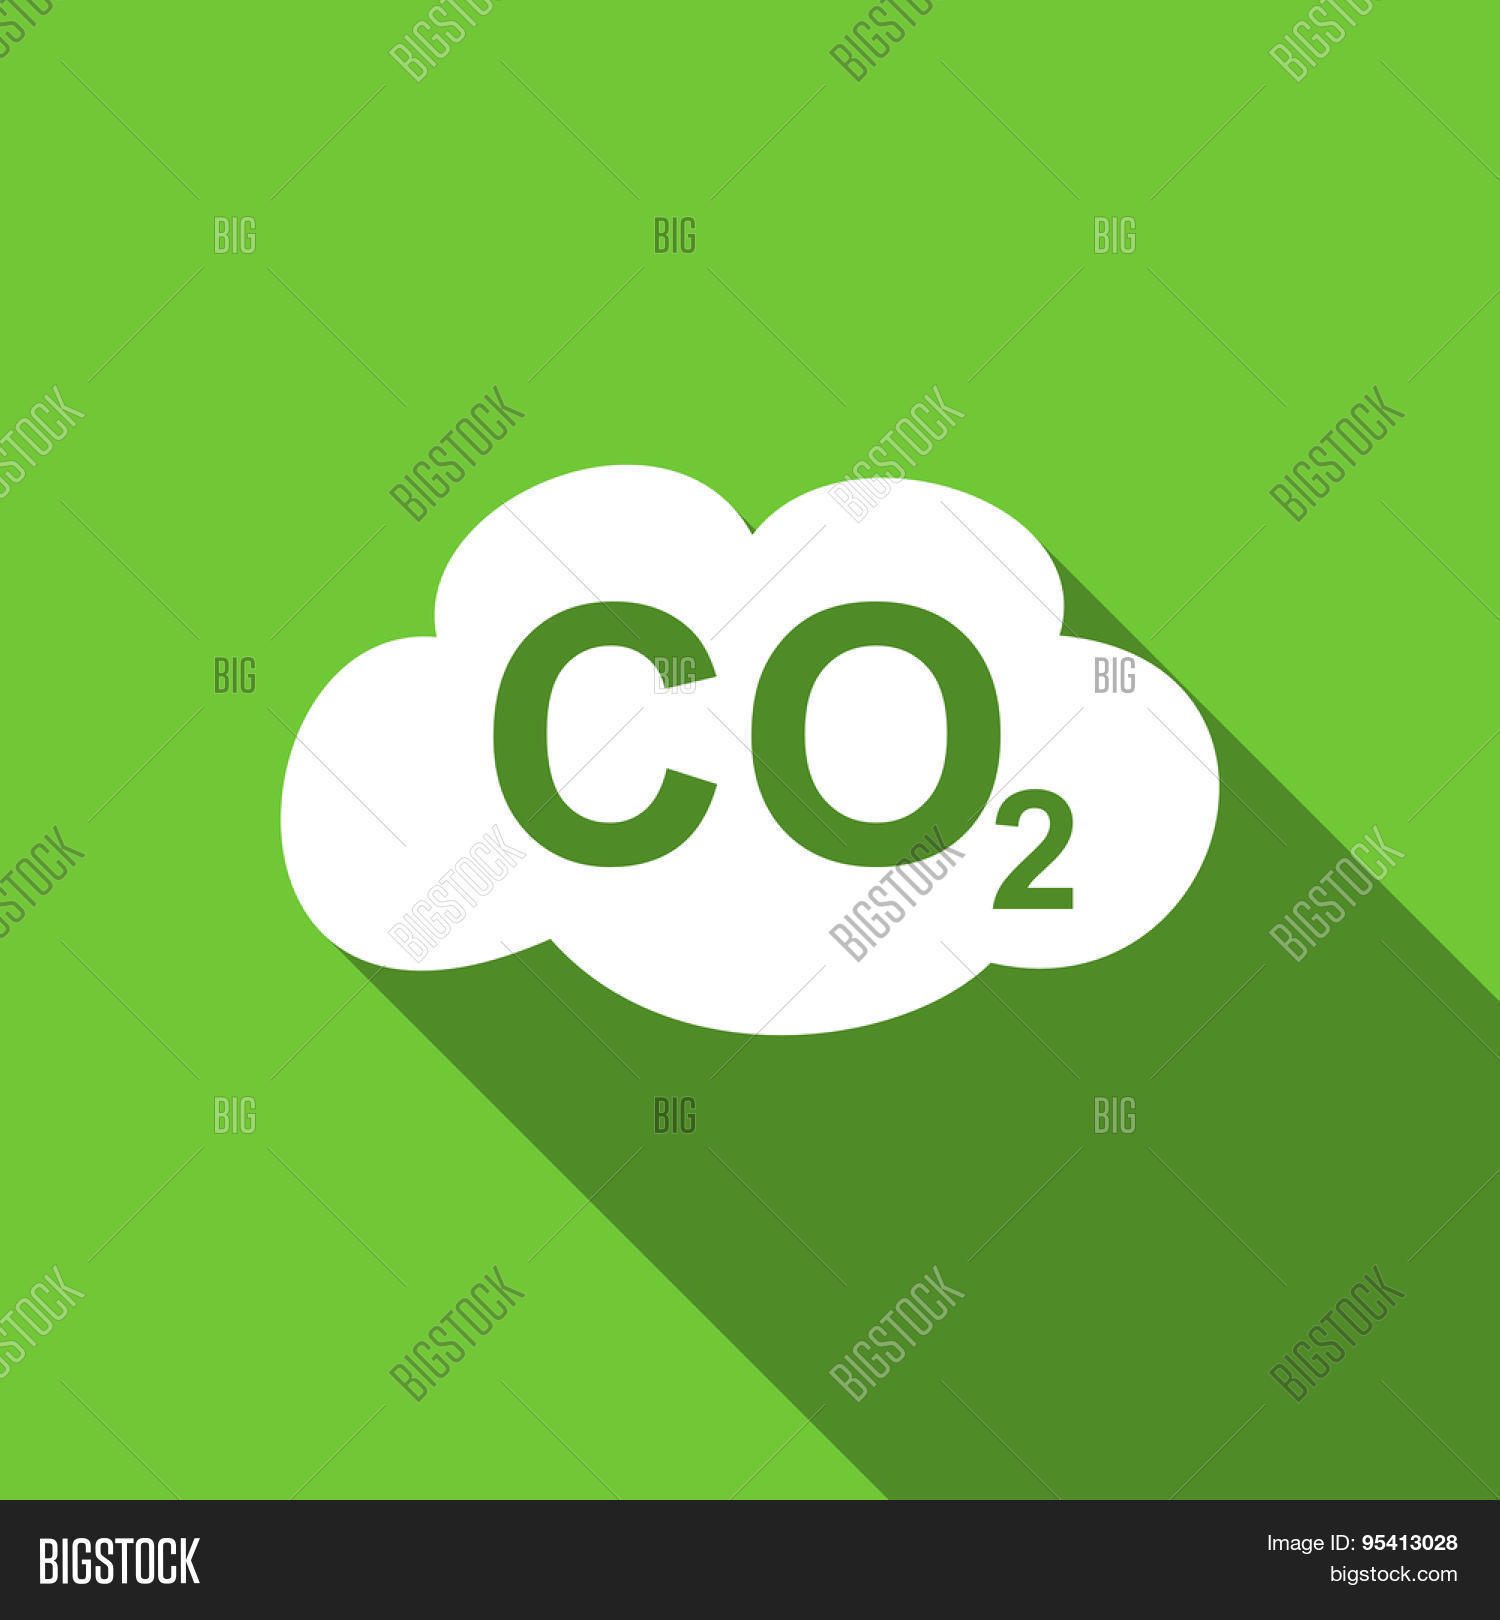 Carbon dioxide flat icon co2 sign image photo bigstock carbon dioxide flat icon co2 sign original modern design green flat icon for web and mobile buycottarizona Images